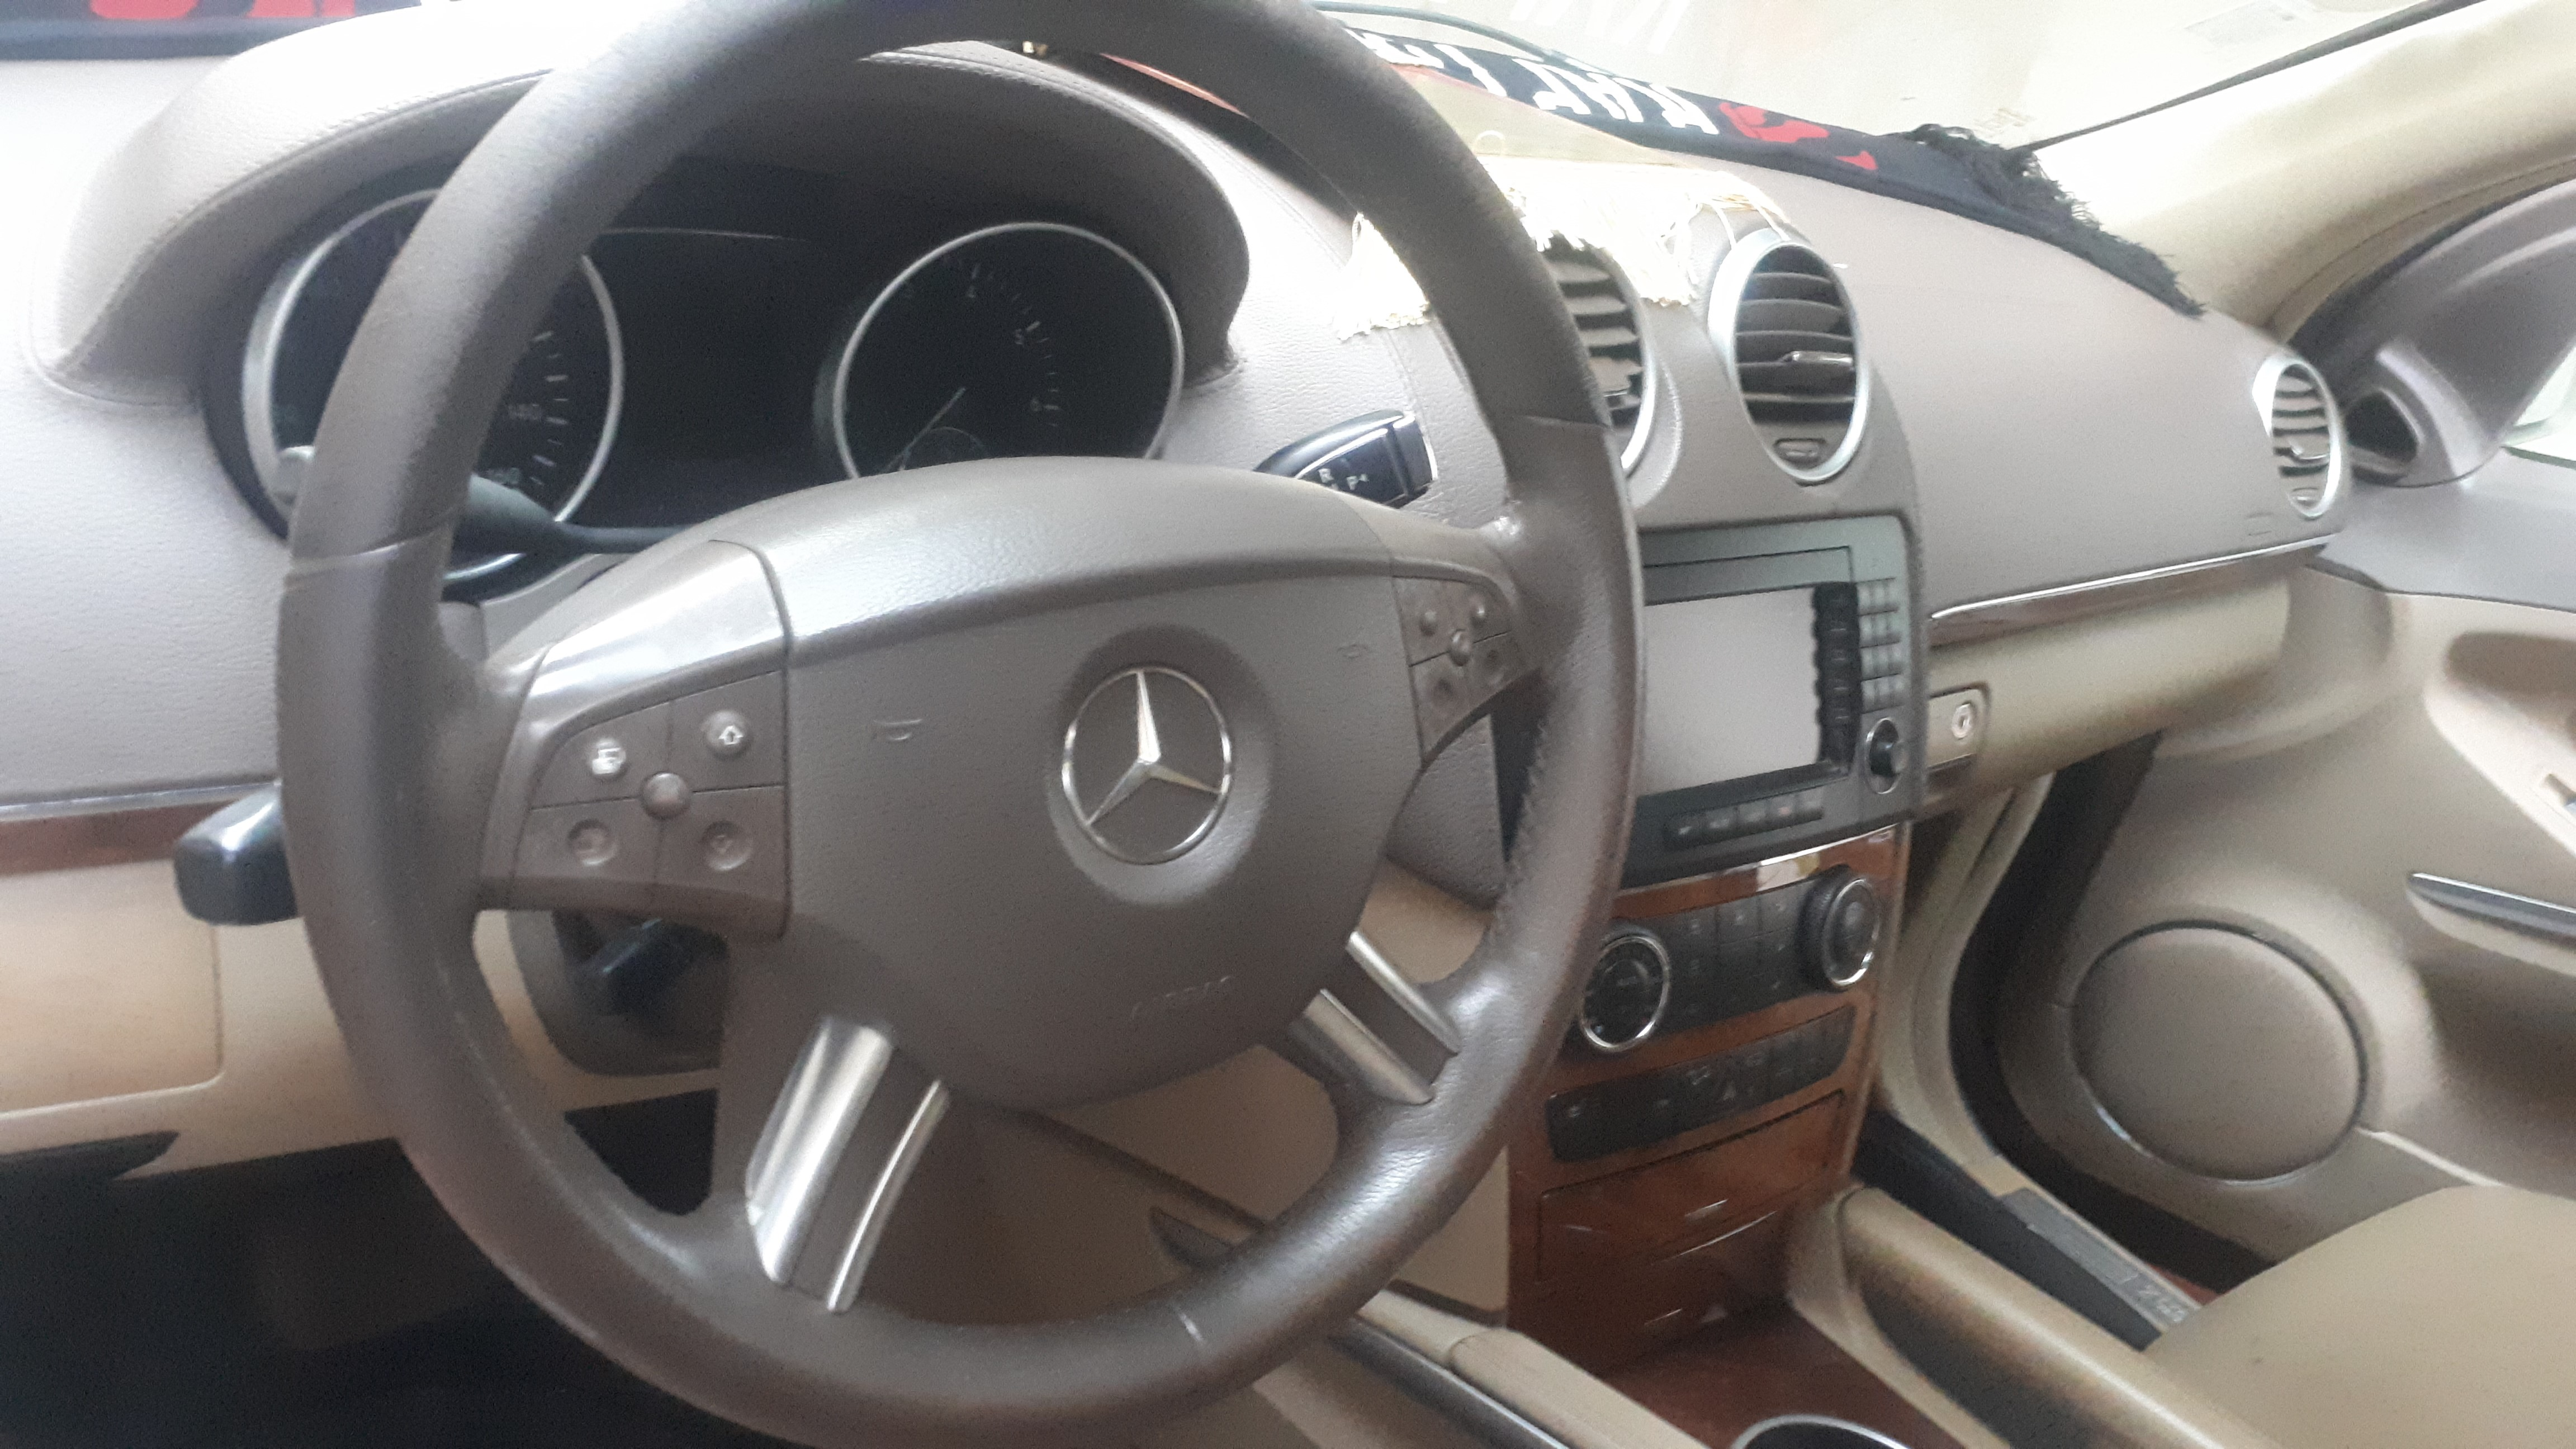 A VENDRE: MERCEDES BENZ 4x4 - GL 450 - 4MATIC - ESSENCE – AUTOMATIQUE